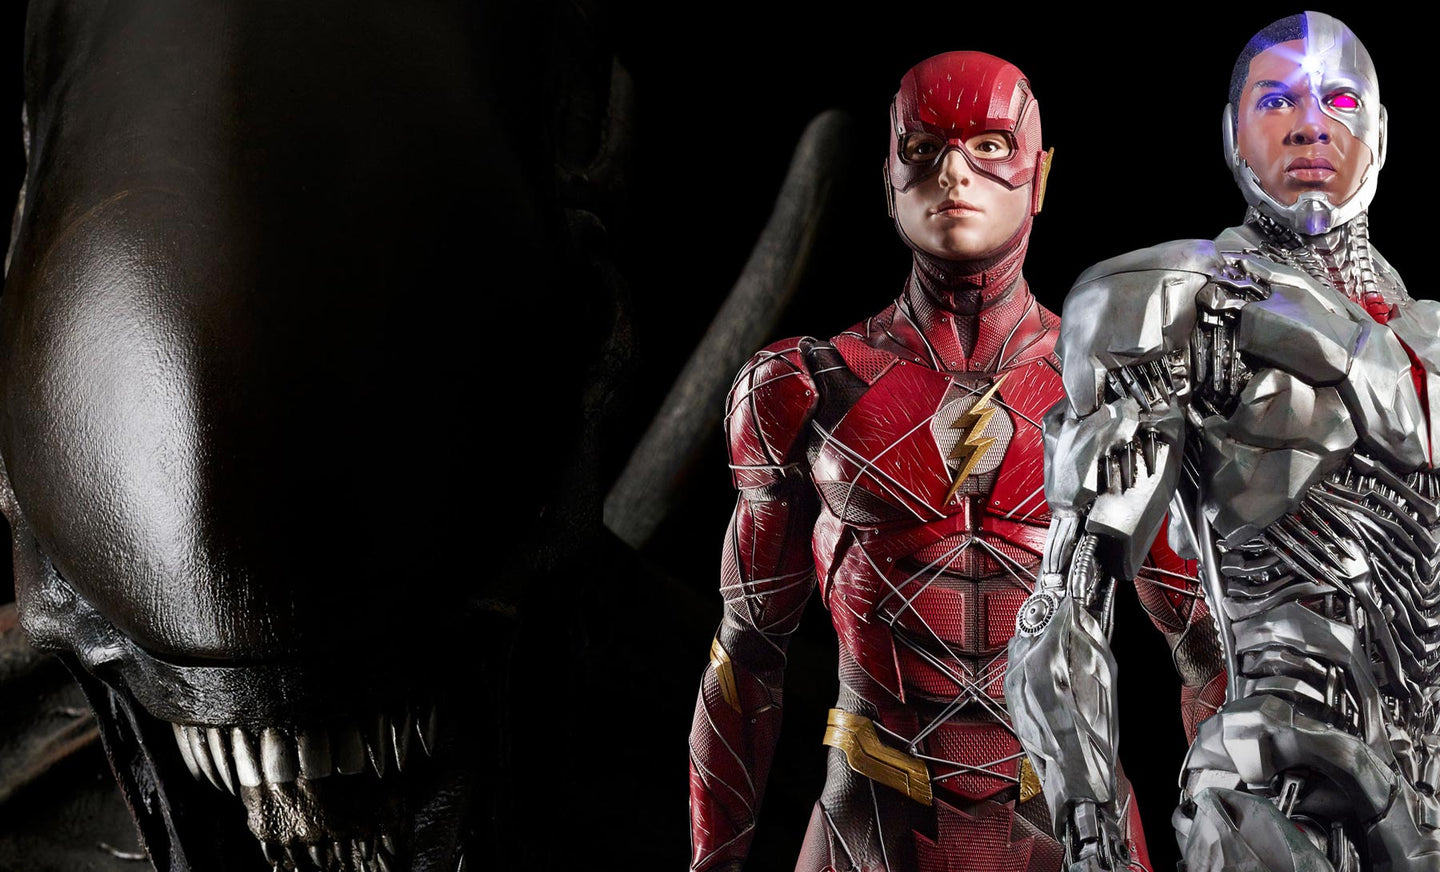 Lifesize Statues Justice League Flash und Cyborg